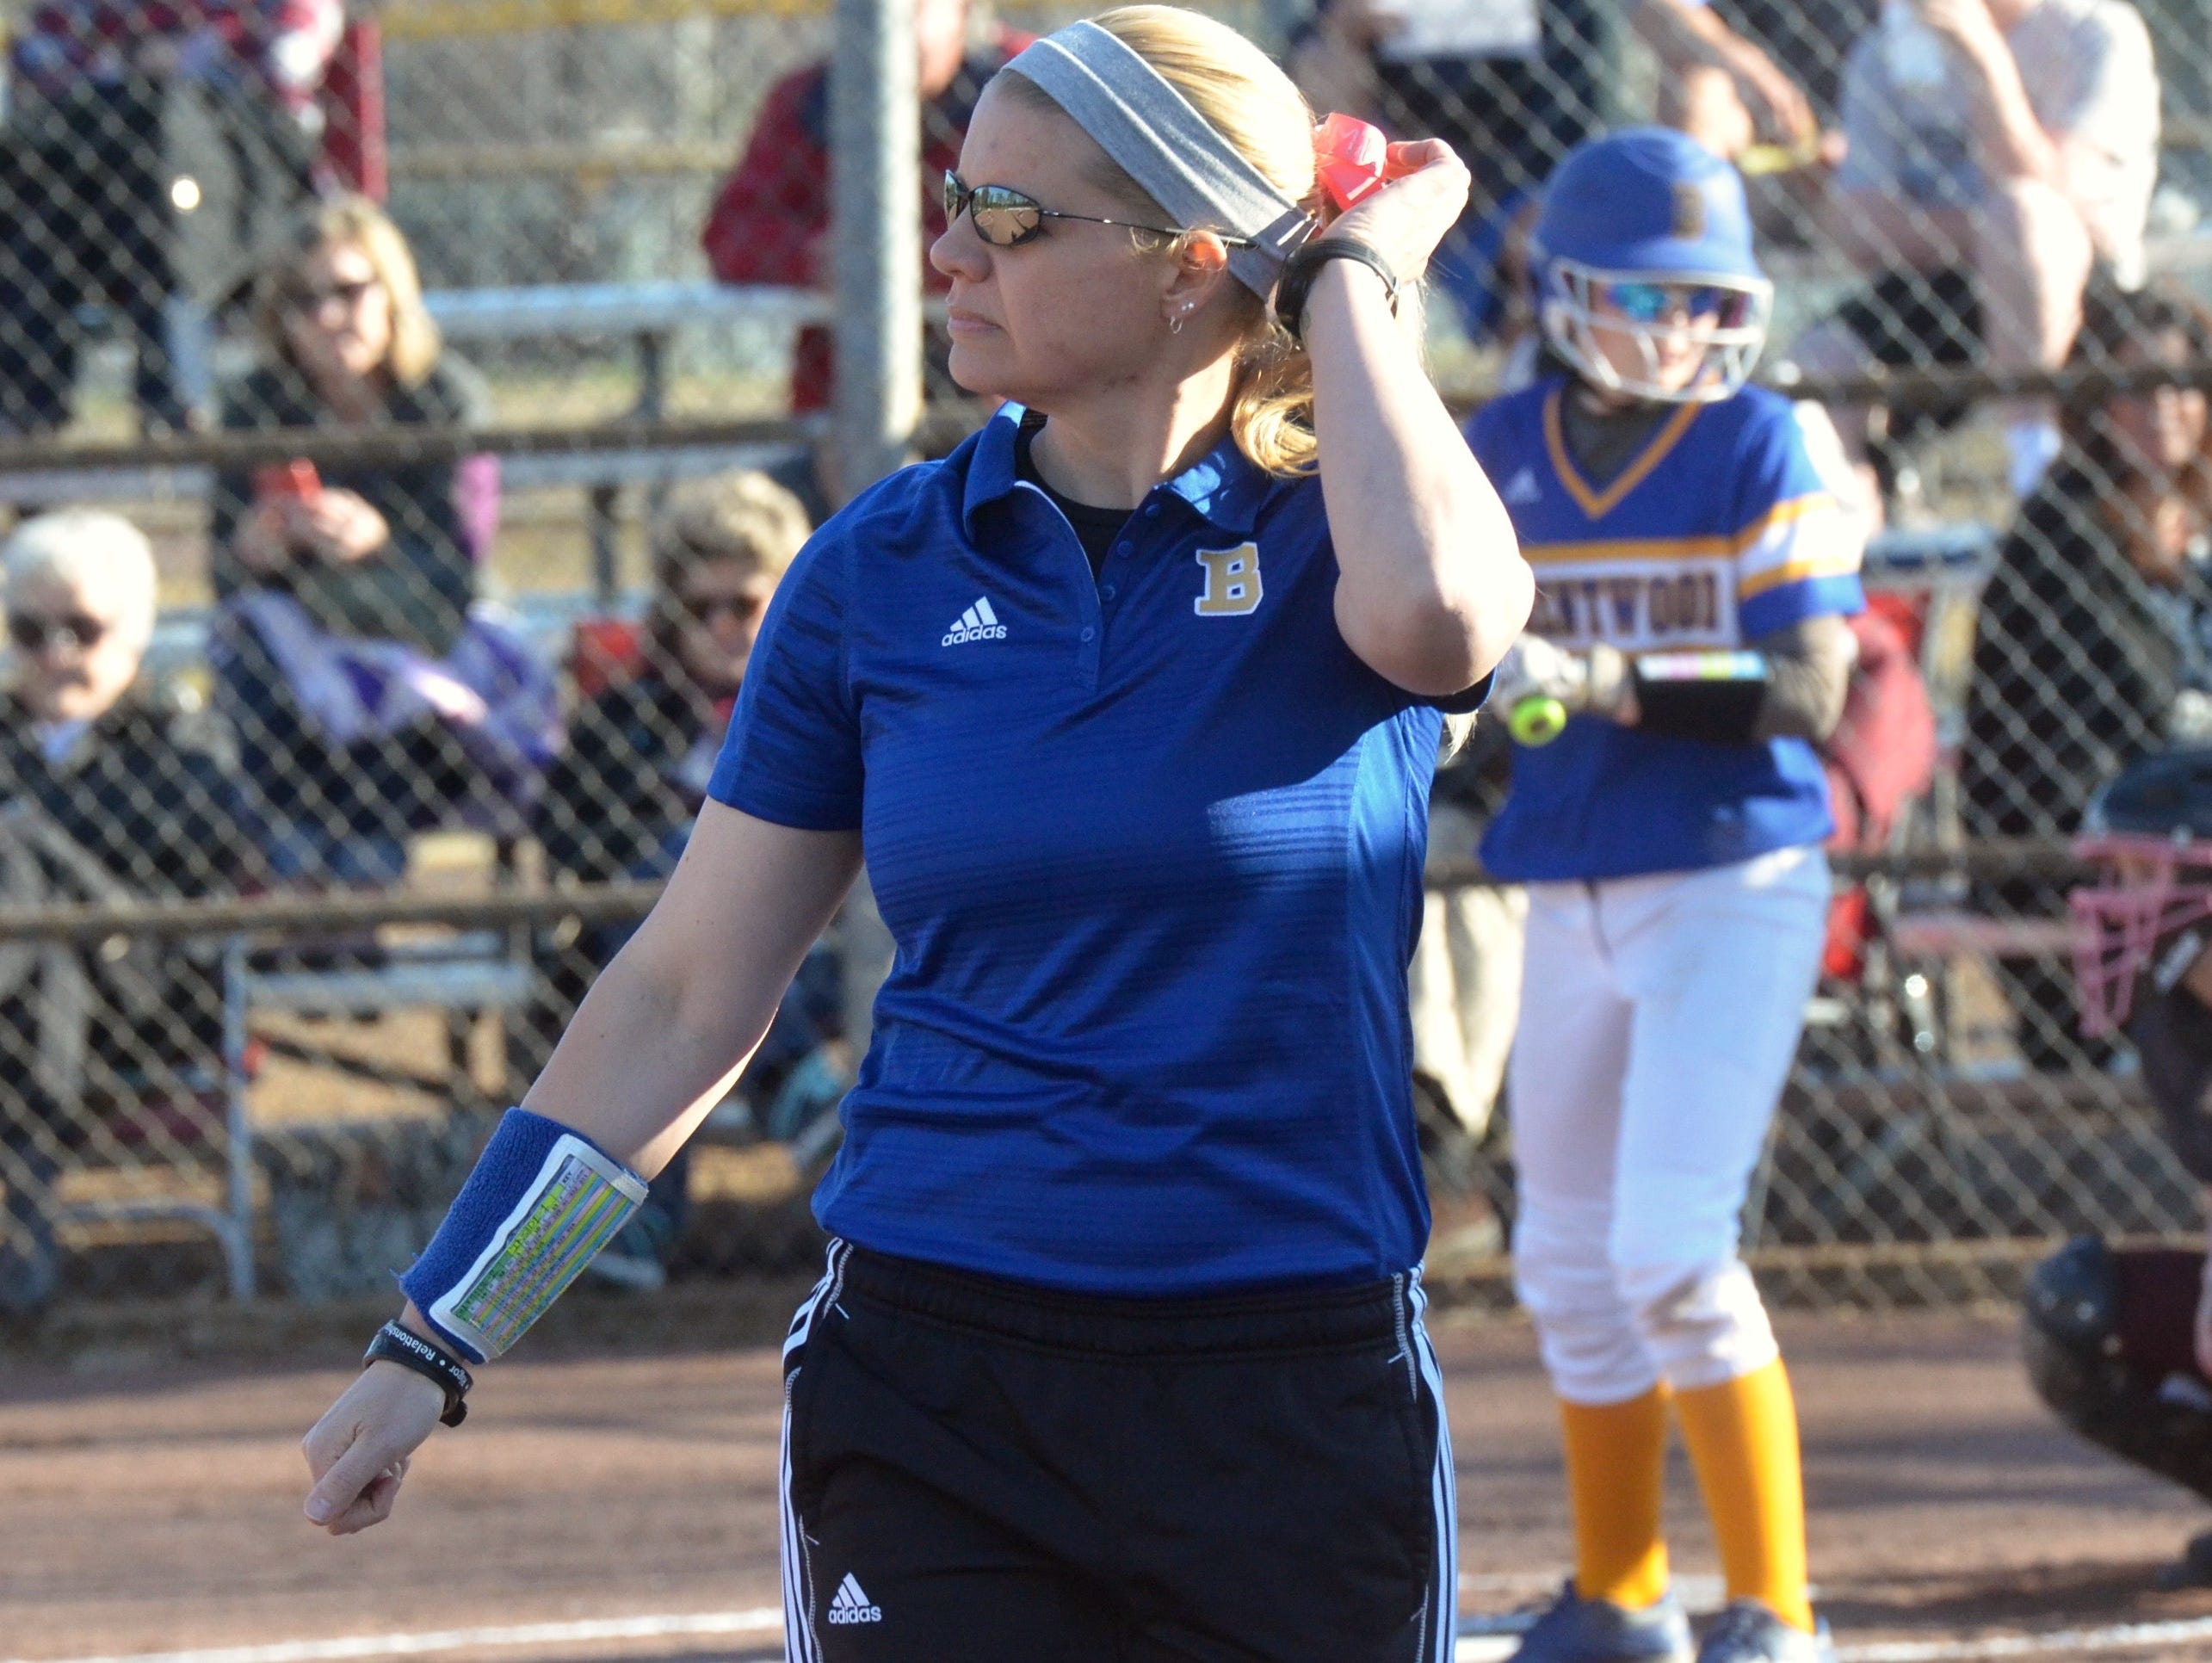 First-year Brentwood coach Erica Powell looks on during Tuesday's District 11-AAA game against Franklin.